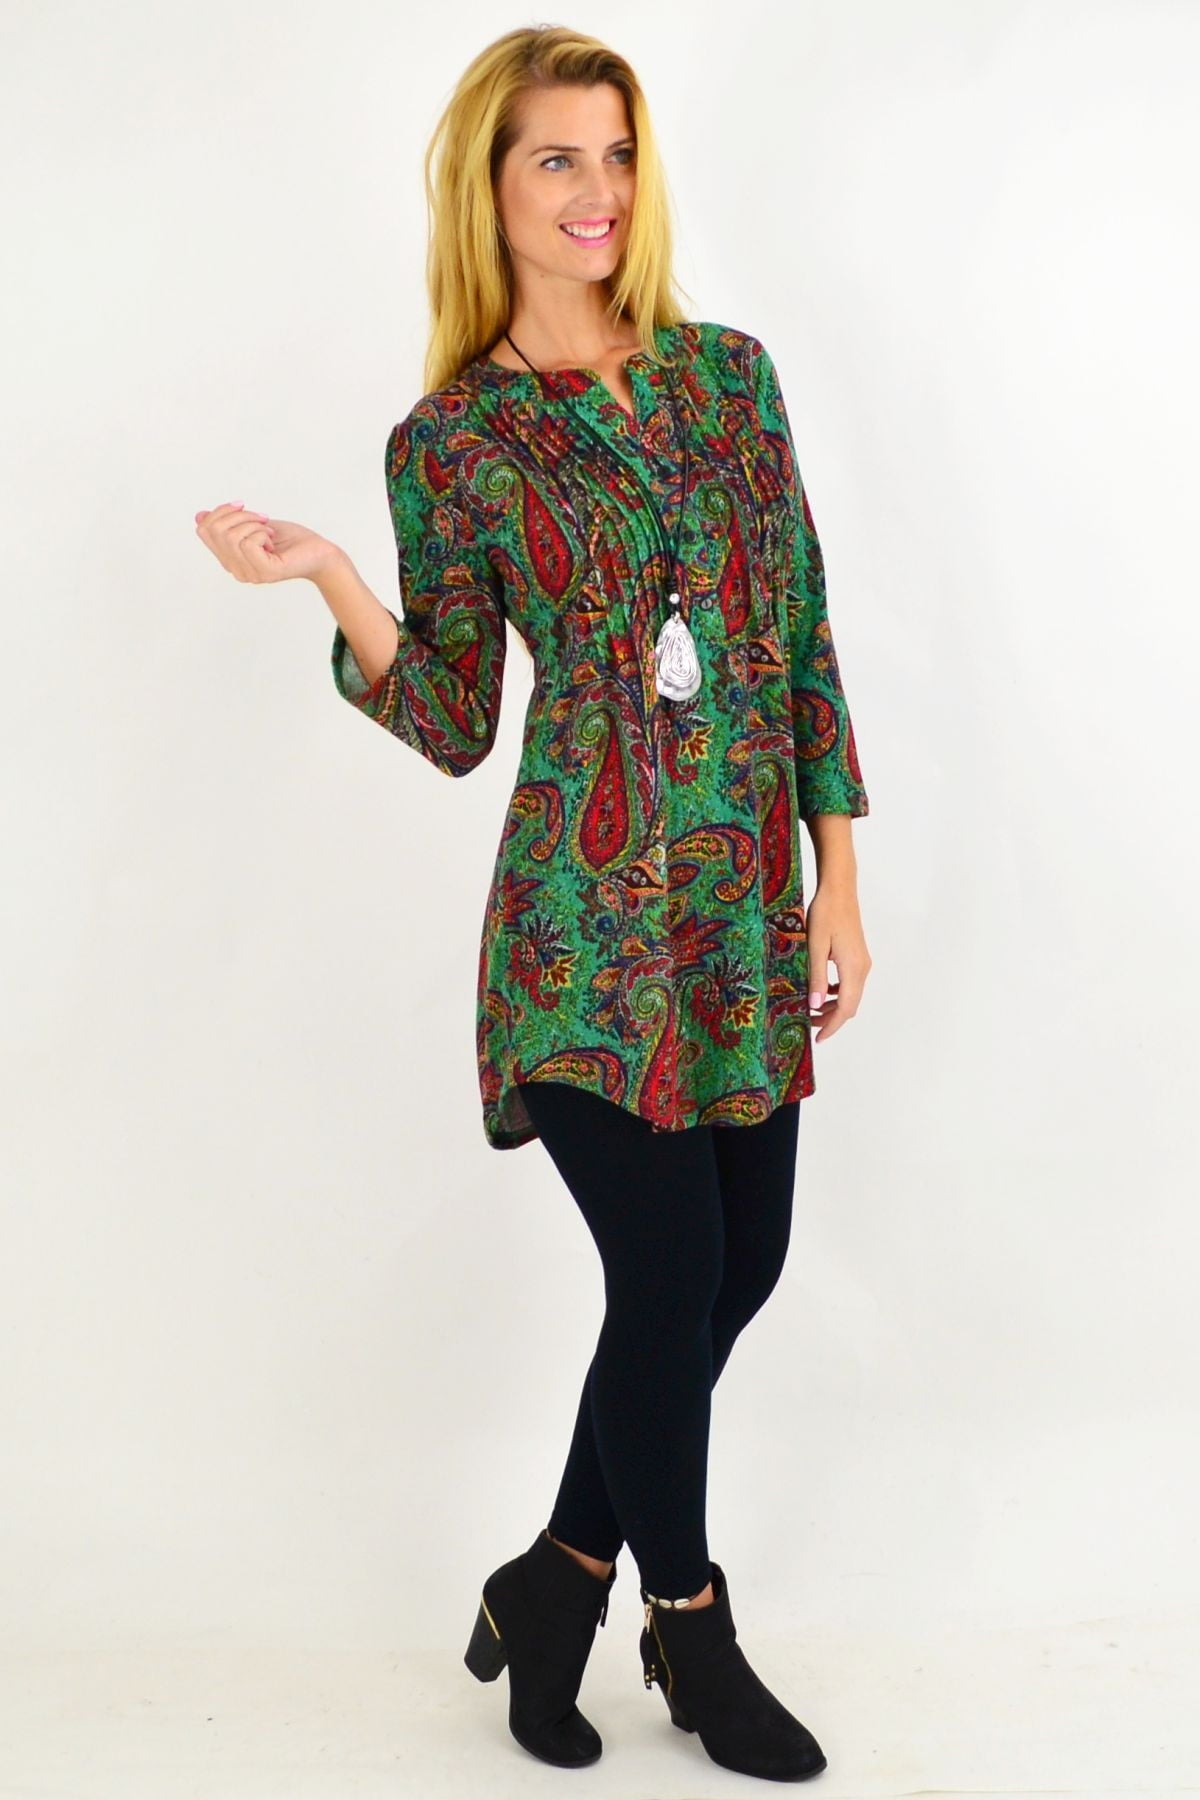 Green Paisley Tunic Top | I Love Tunics | Tunic Tops | Tunic | Tunic Dresses  | womens clothing online